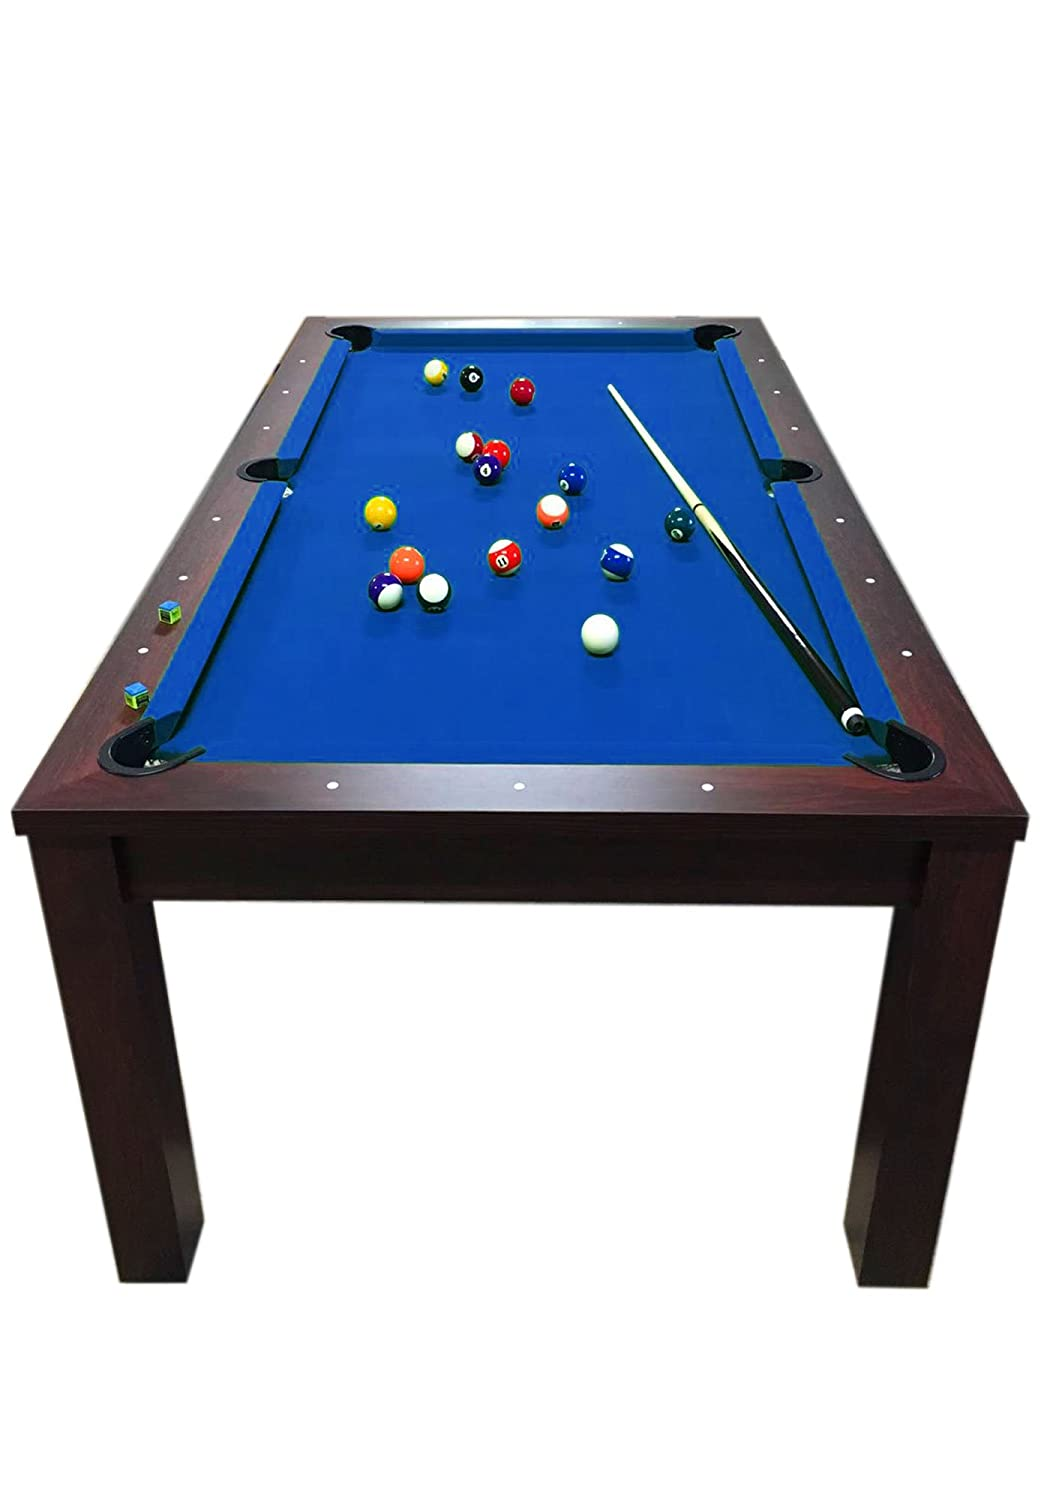 grafica ma ro srl 7 ft blue pool table billiard indoor with coverage rh amazon co uk